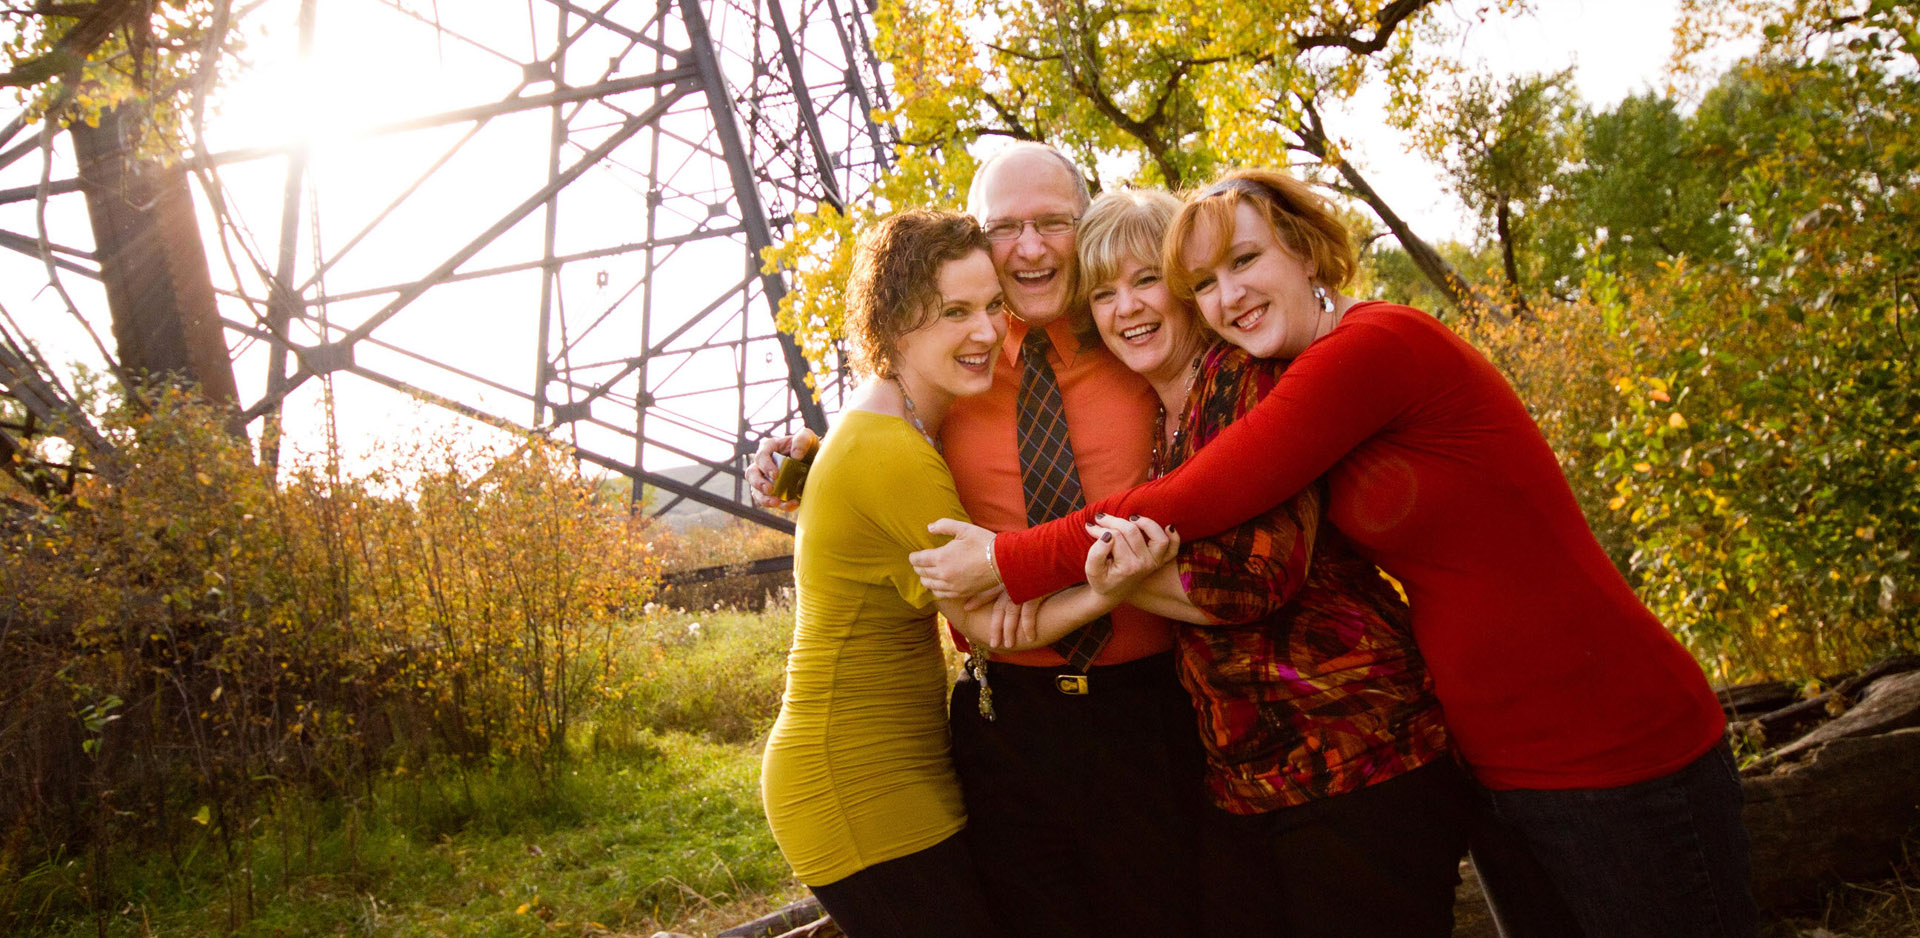 Fun autumn photo in Indian Battle Park of family hugging